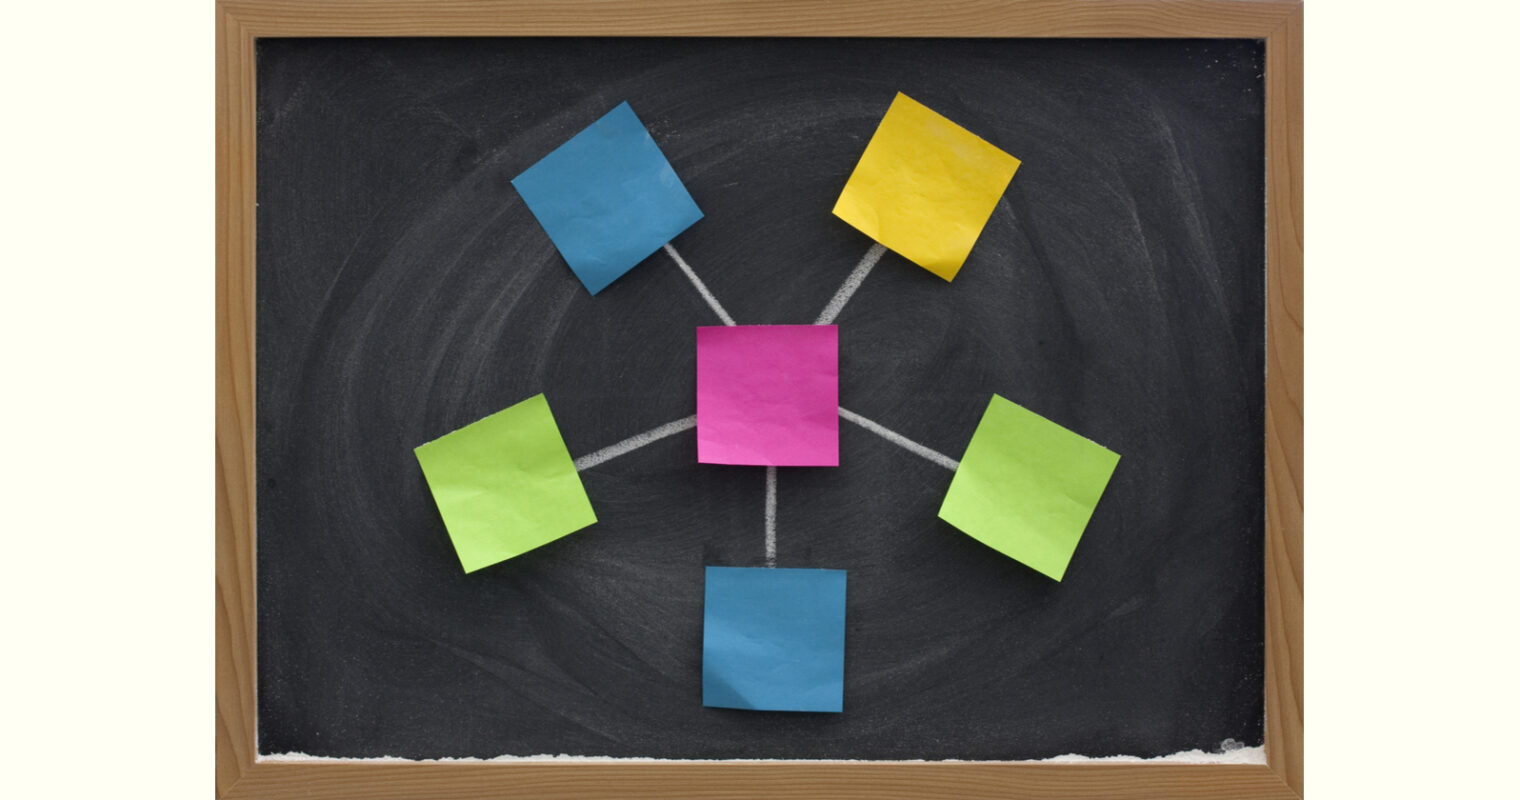 Hub and Spoke Content Marketing: What Is It & How Does It Work?